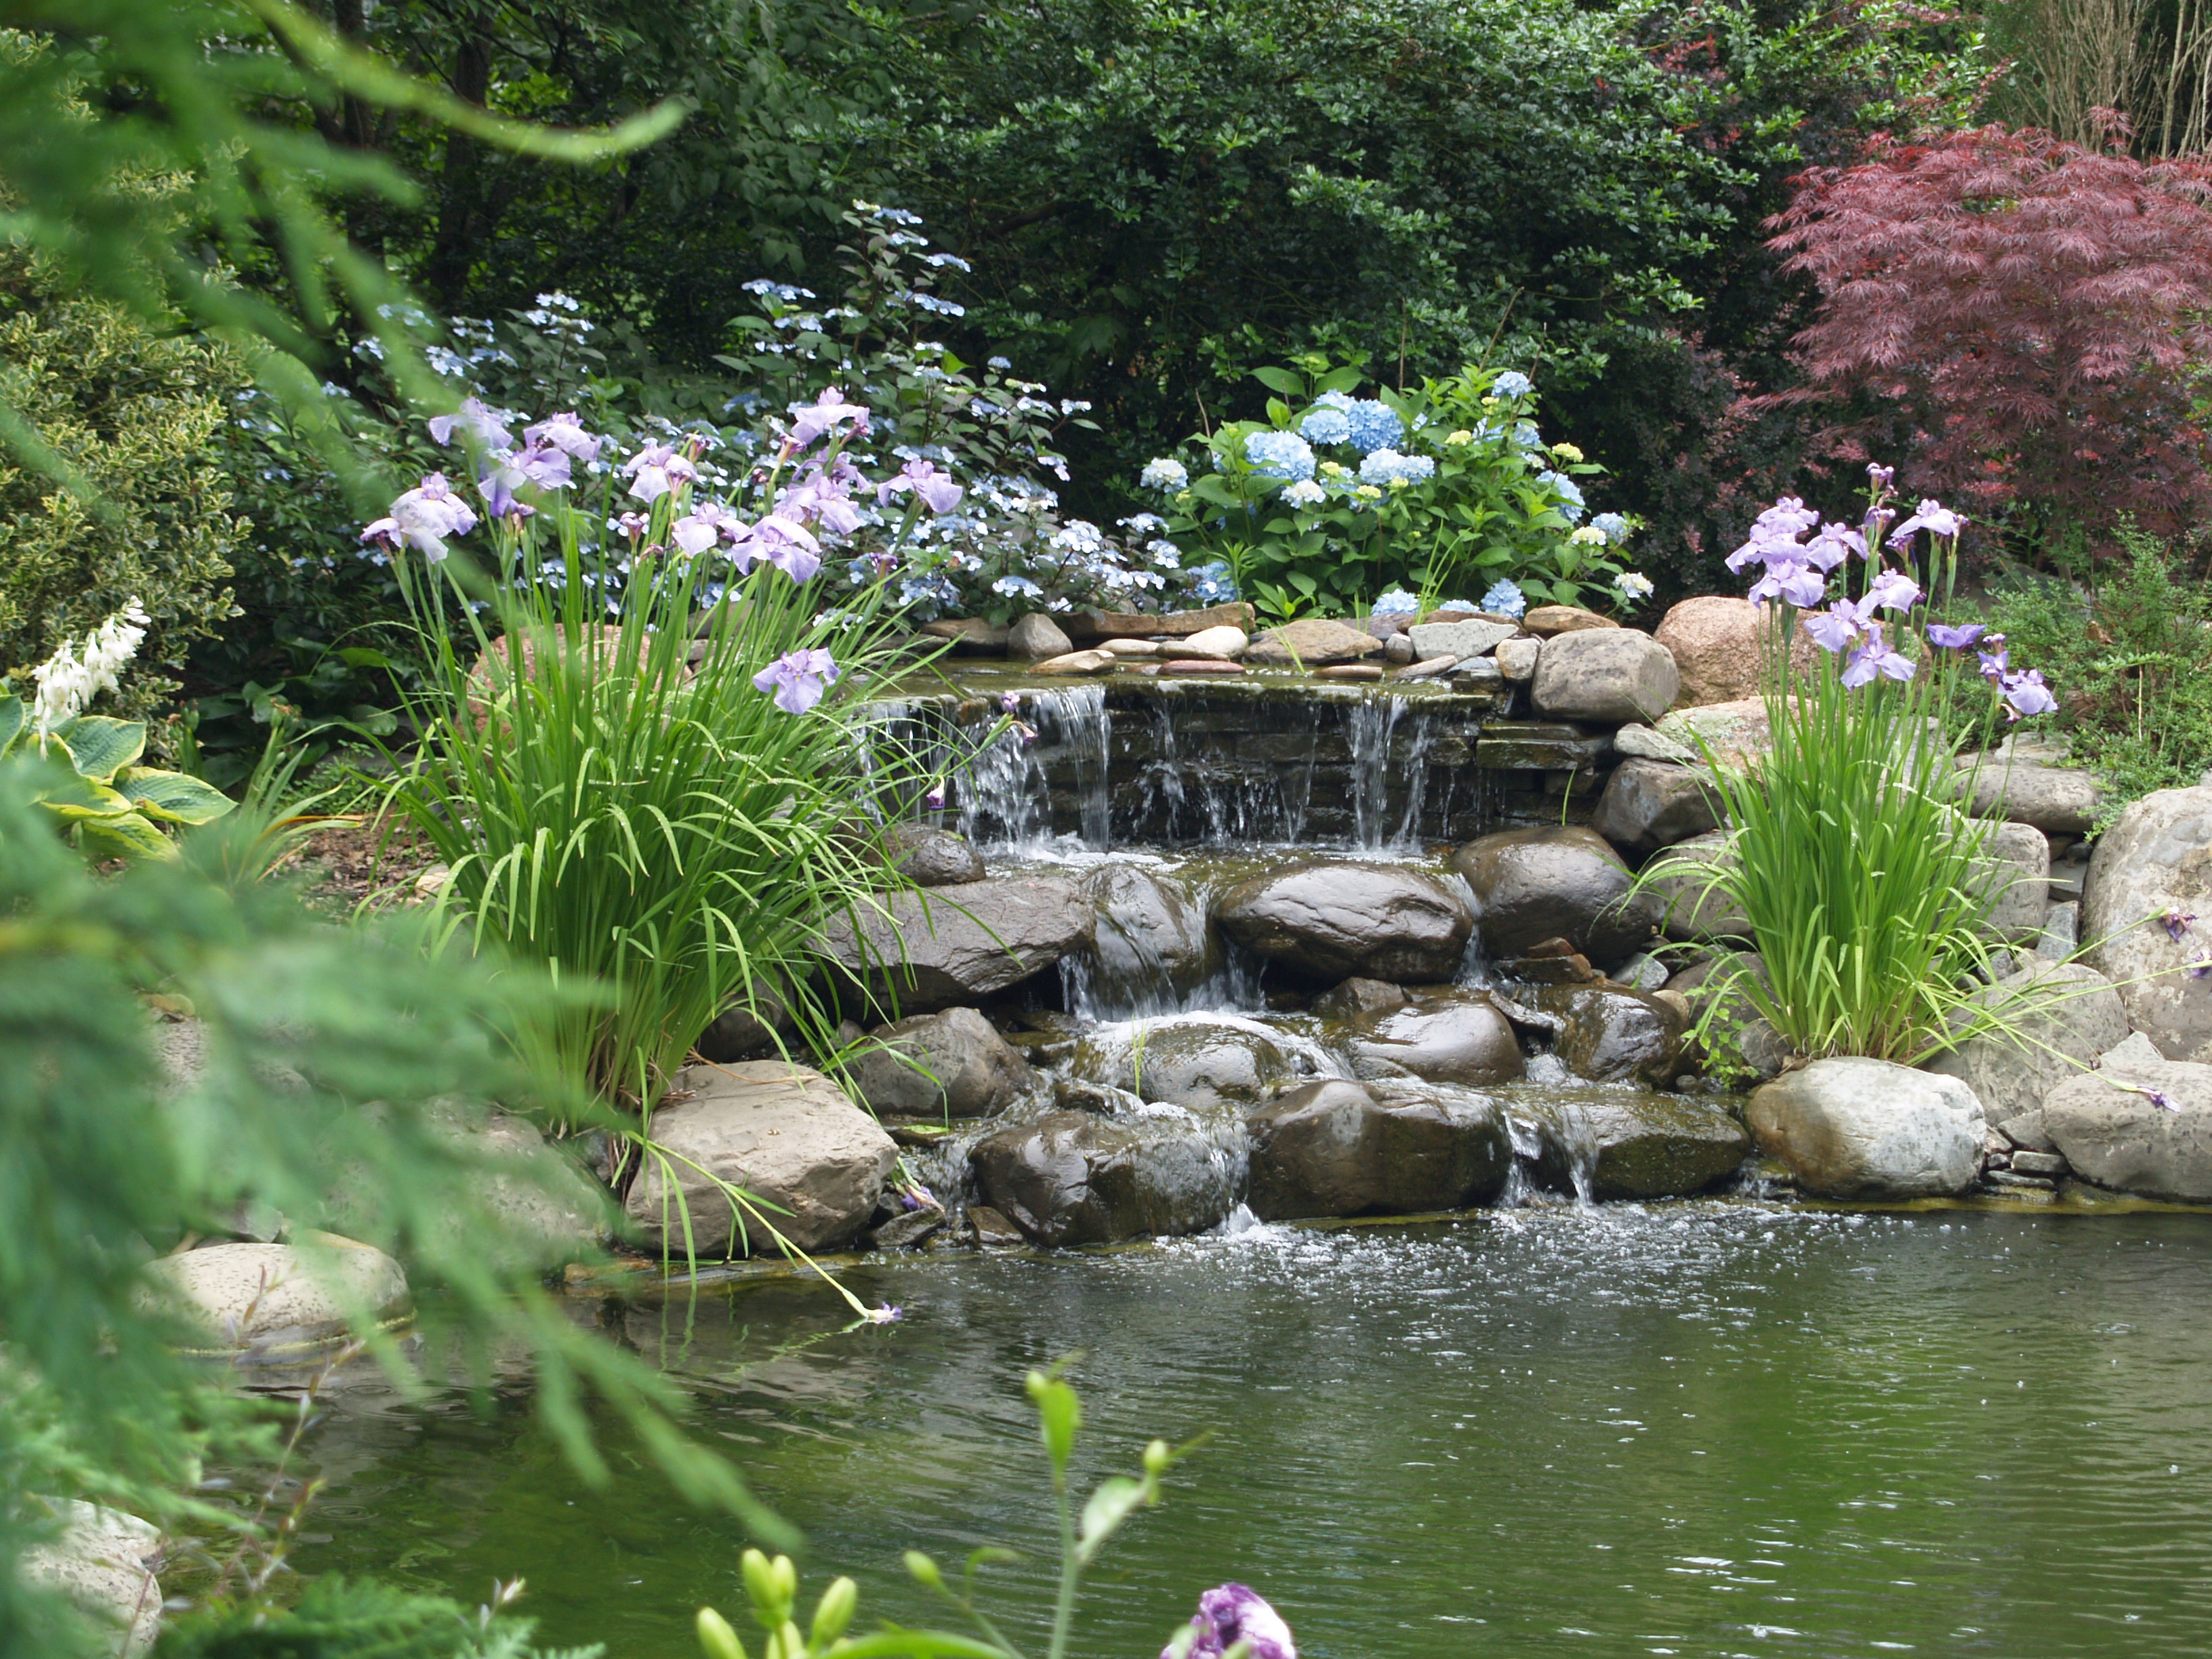 Garden ponds are a delight ramblin 39 through dave 39 s garden for Design of pond garden